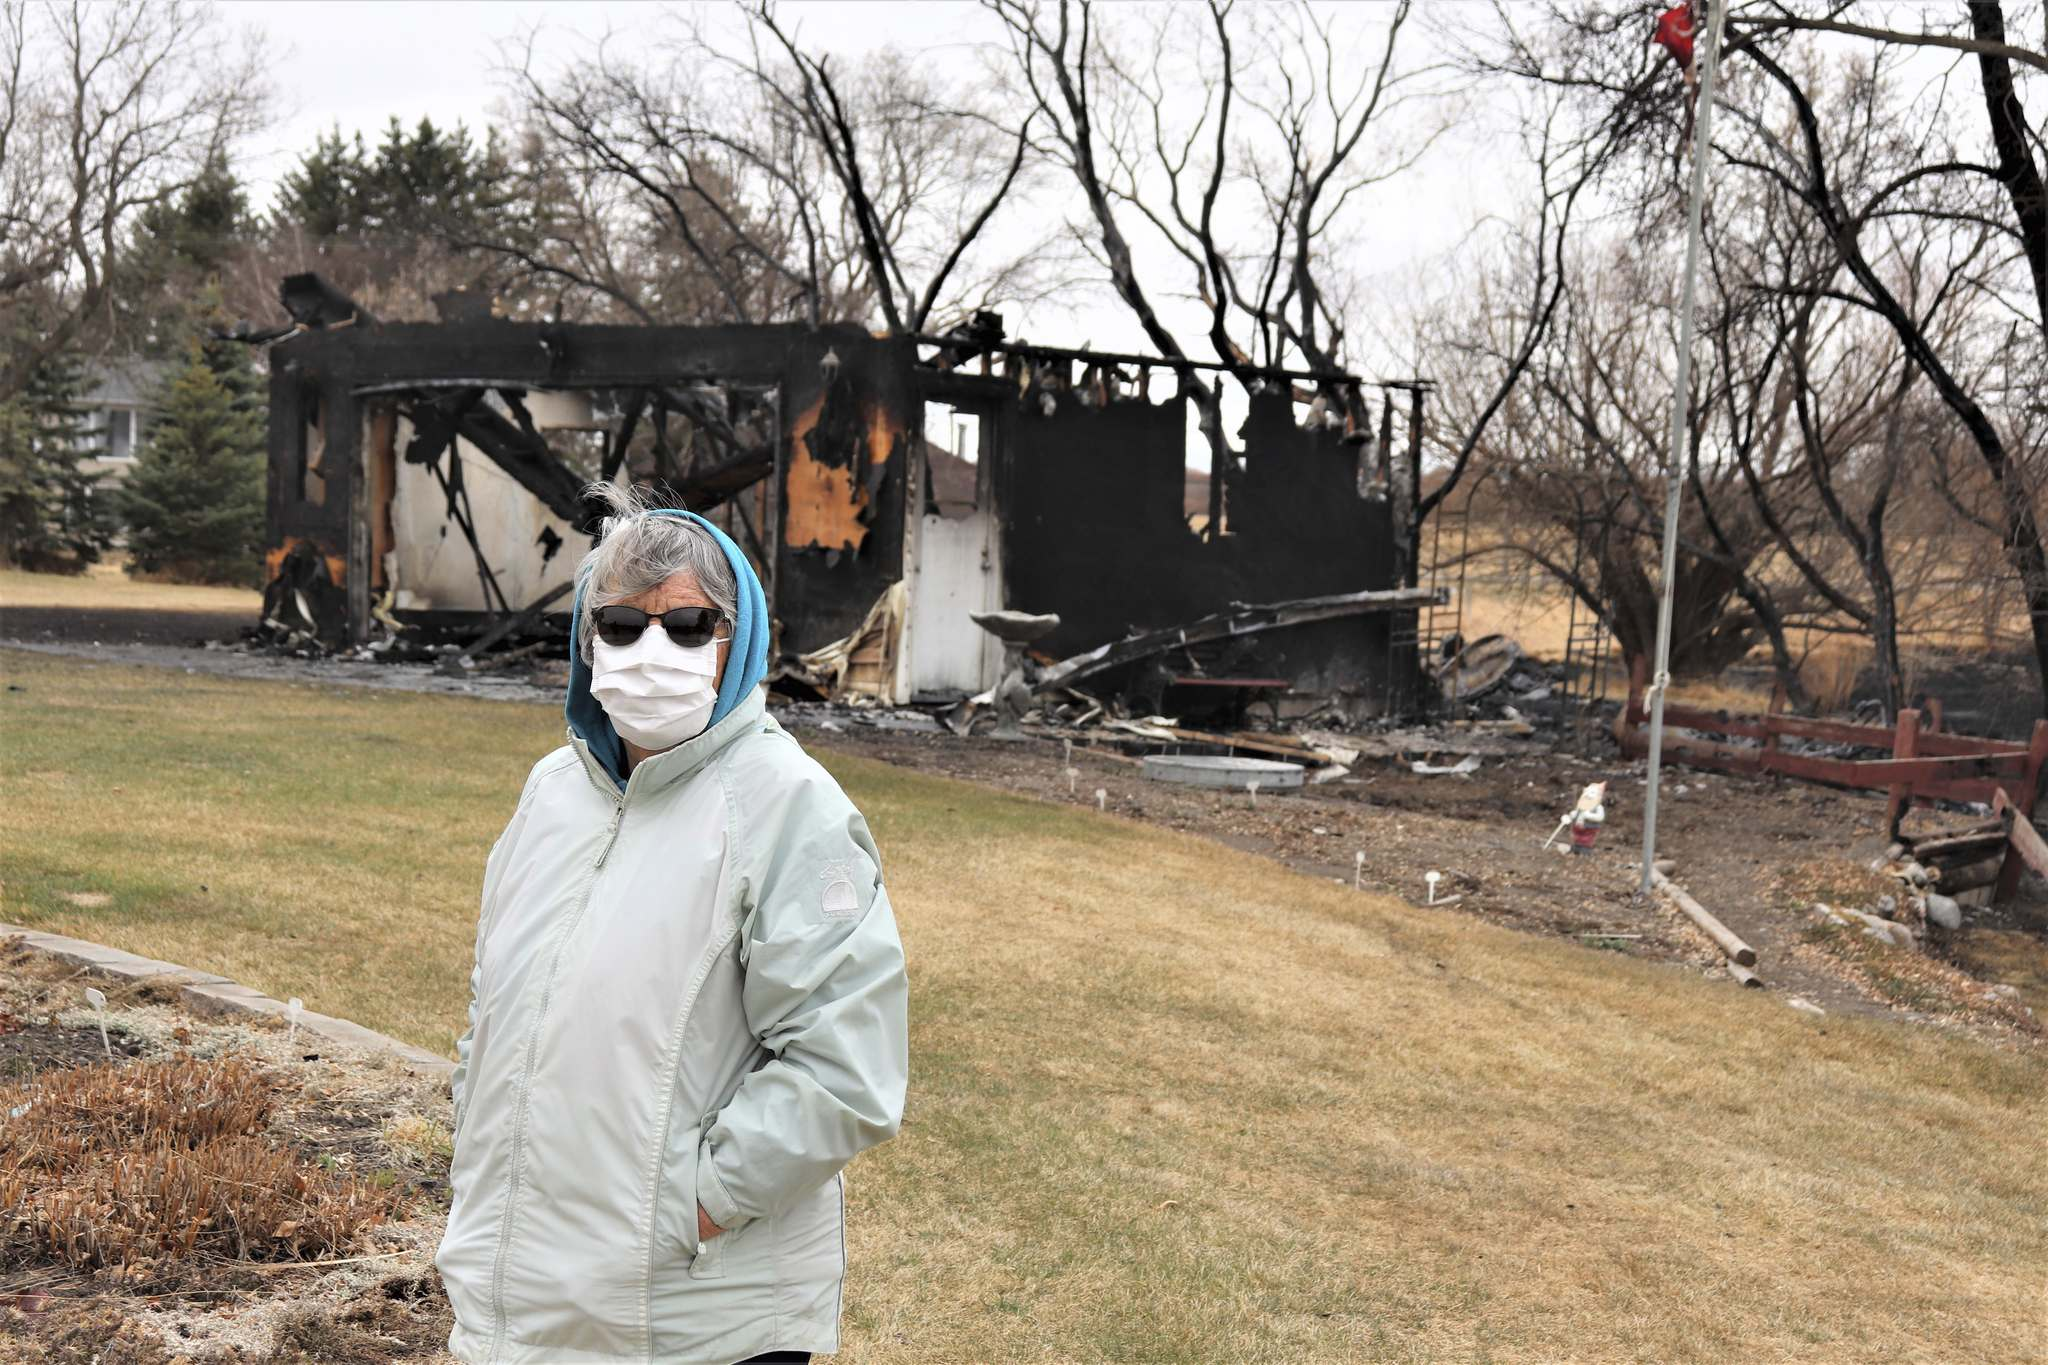 Rapid City resident Edie Evans is seen in front of her burnt-out garage on Sunday afternoon, nearly 24 hours after it caught fire due to a controlled burn gone awry. (Kyle Darbyson/The Brandon Sun)